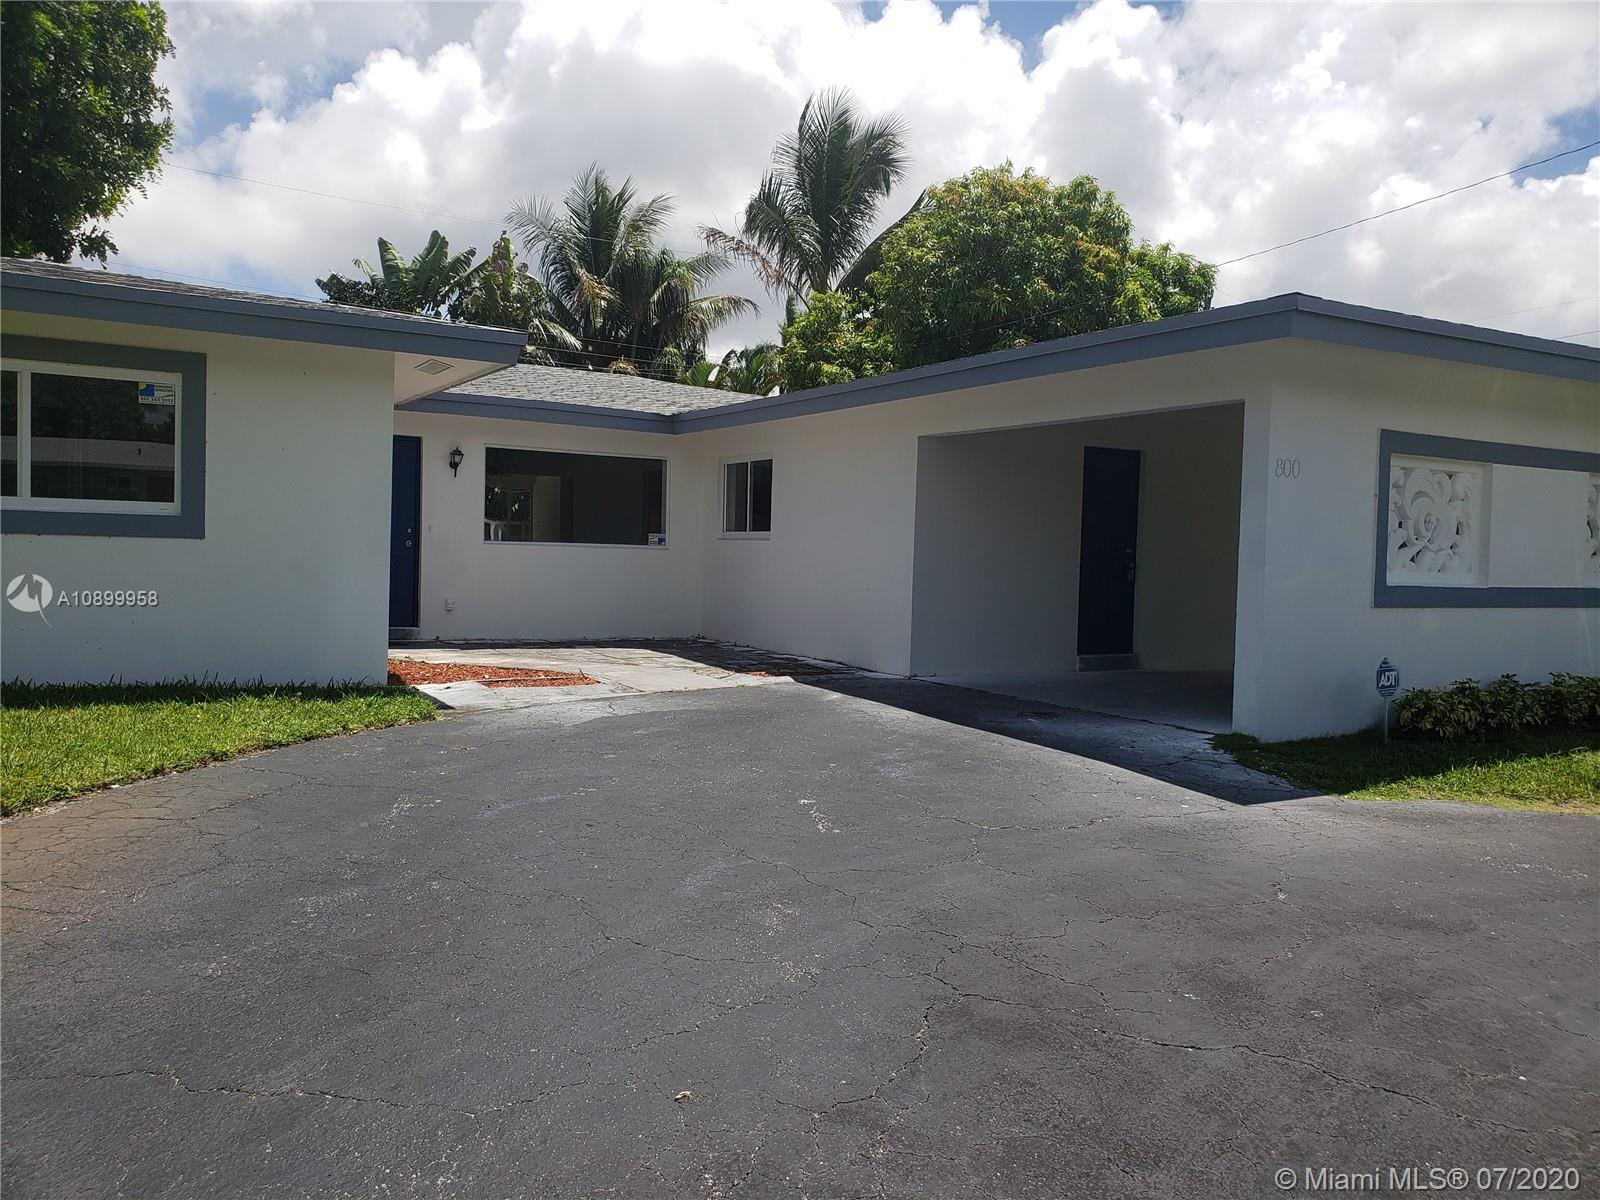 Huge price reduction for a quick sale! Bring your offer today! 